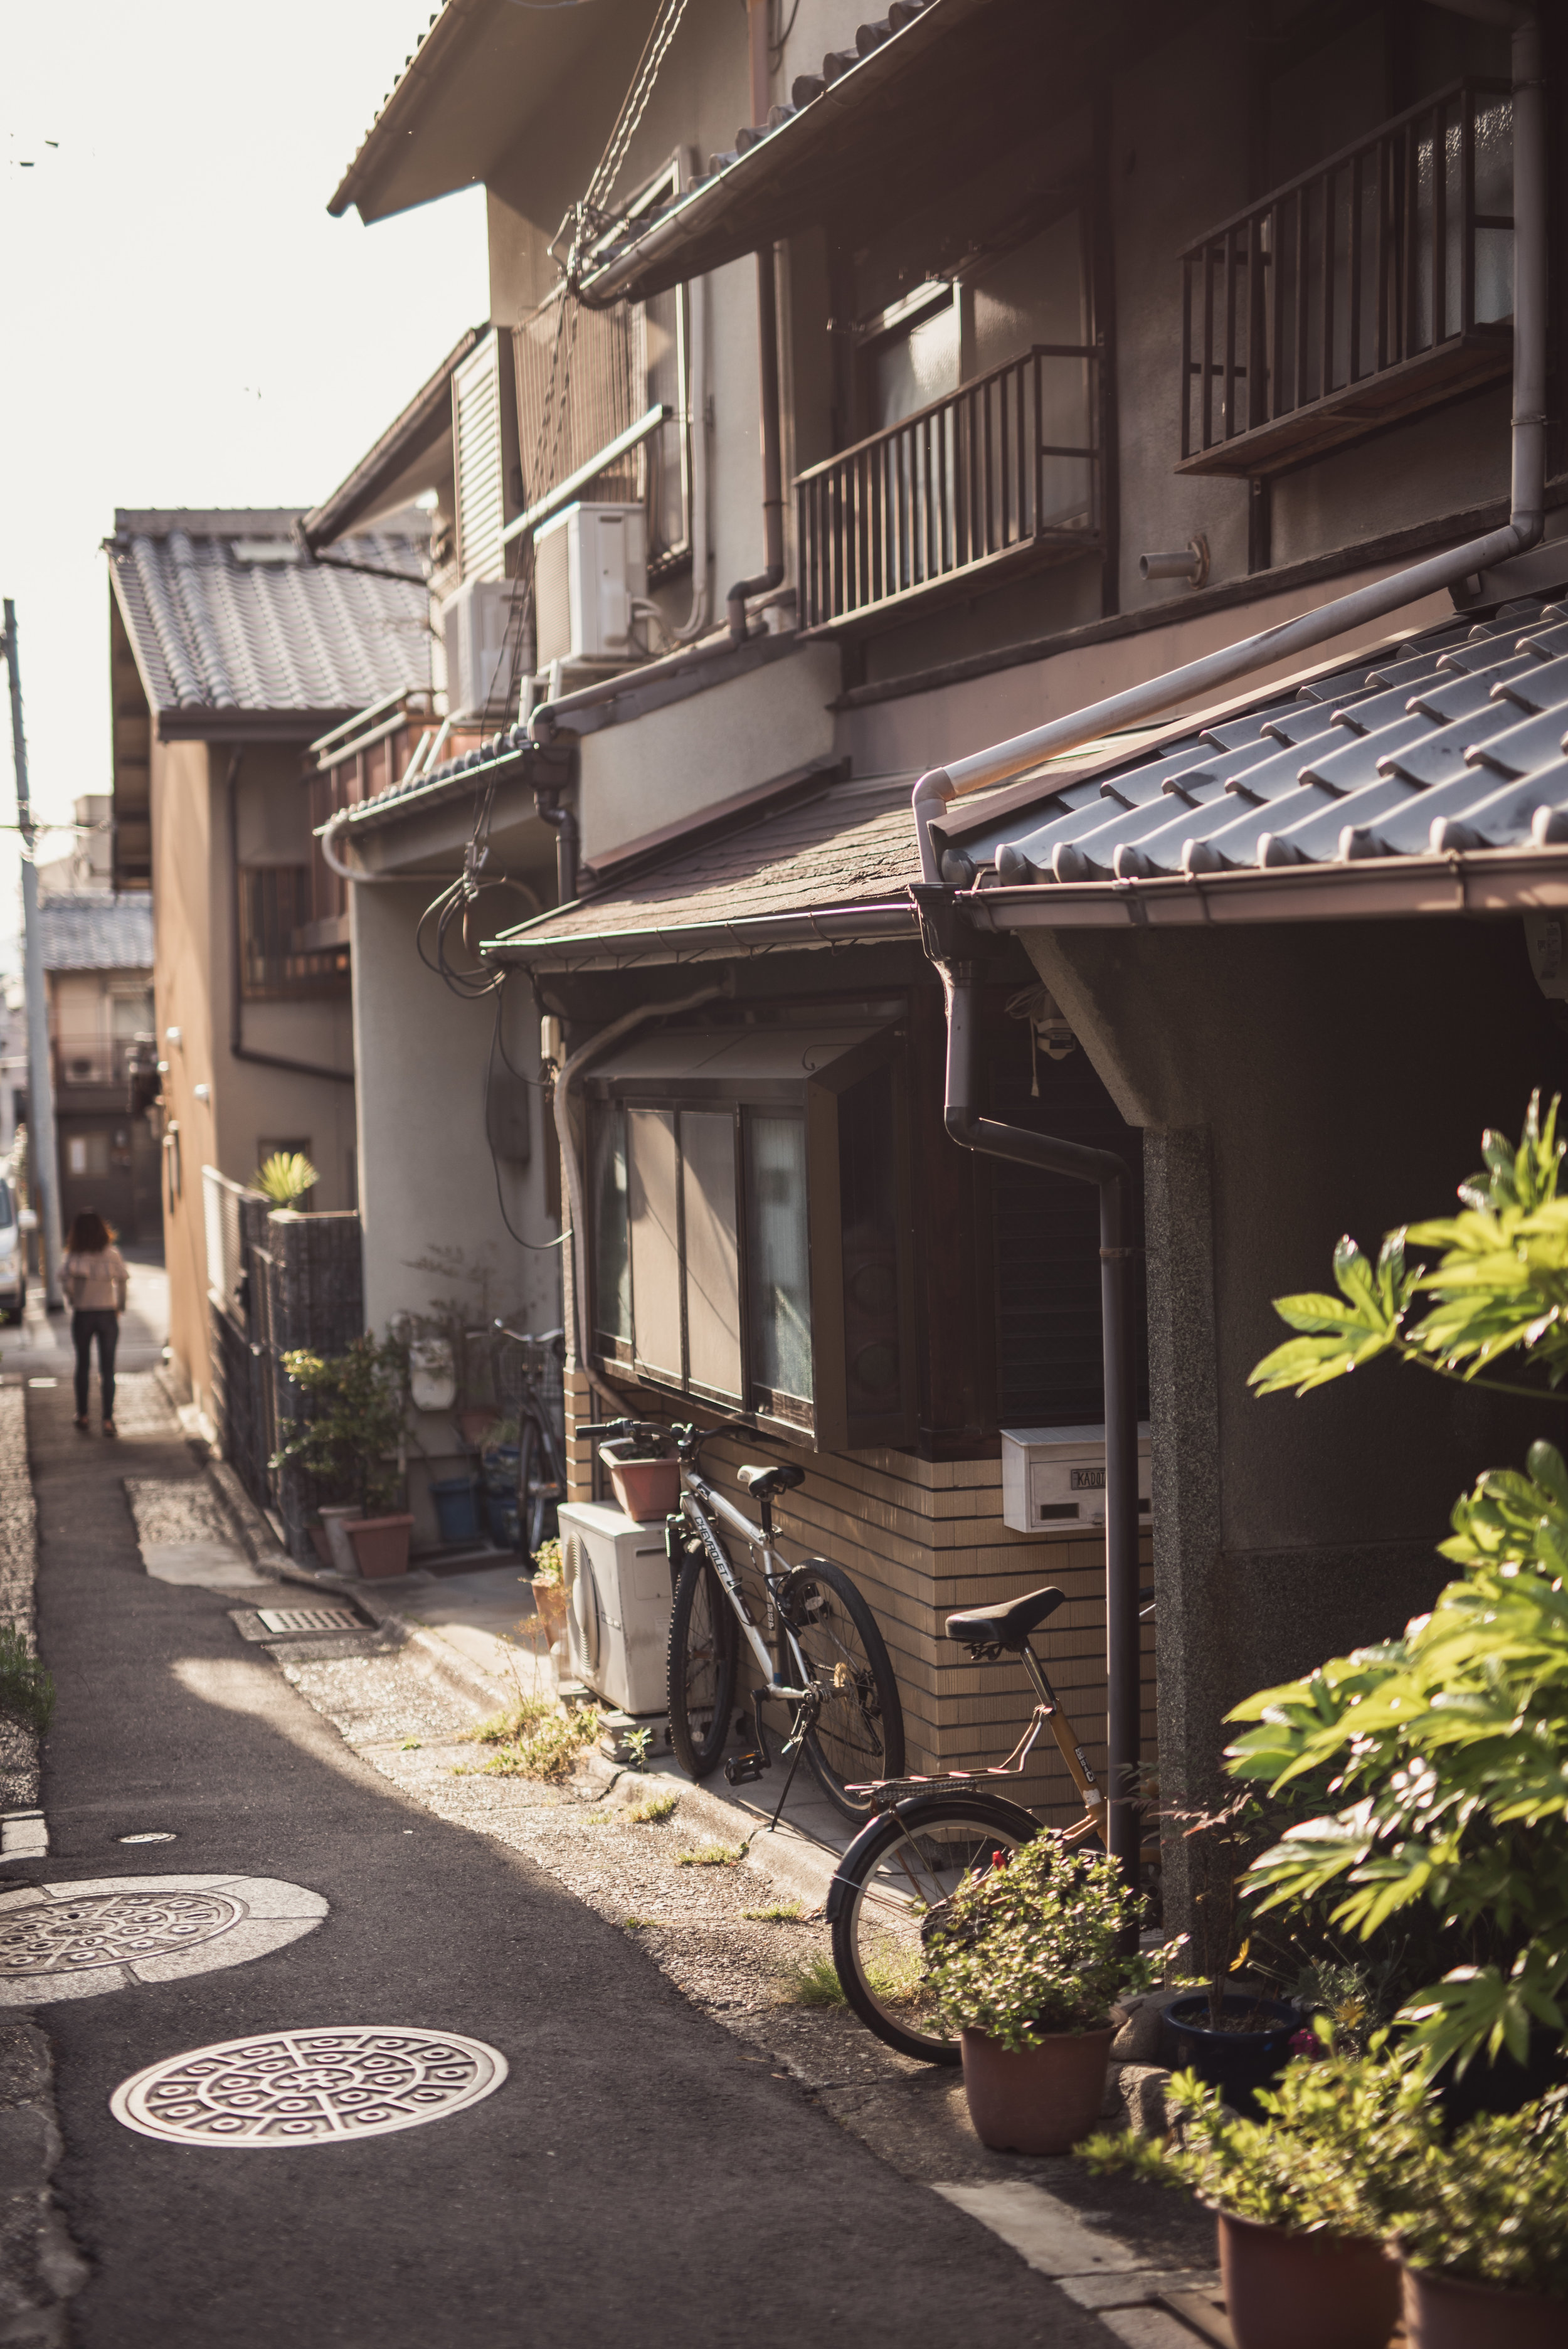 A residential alley in downtown Kyoto